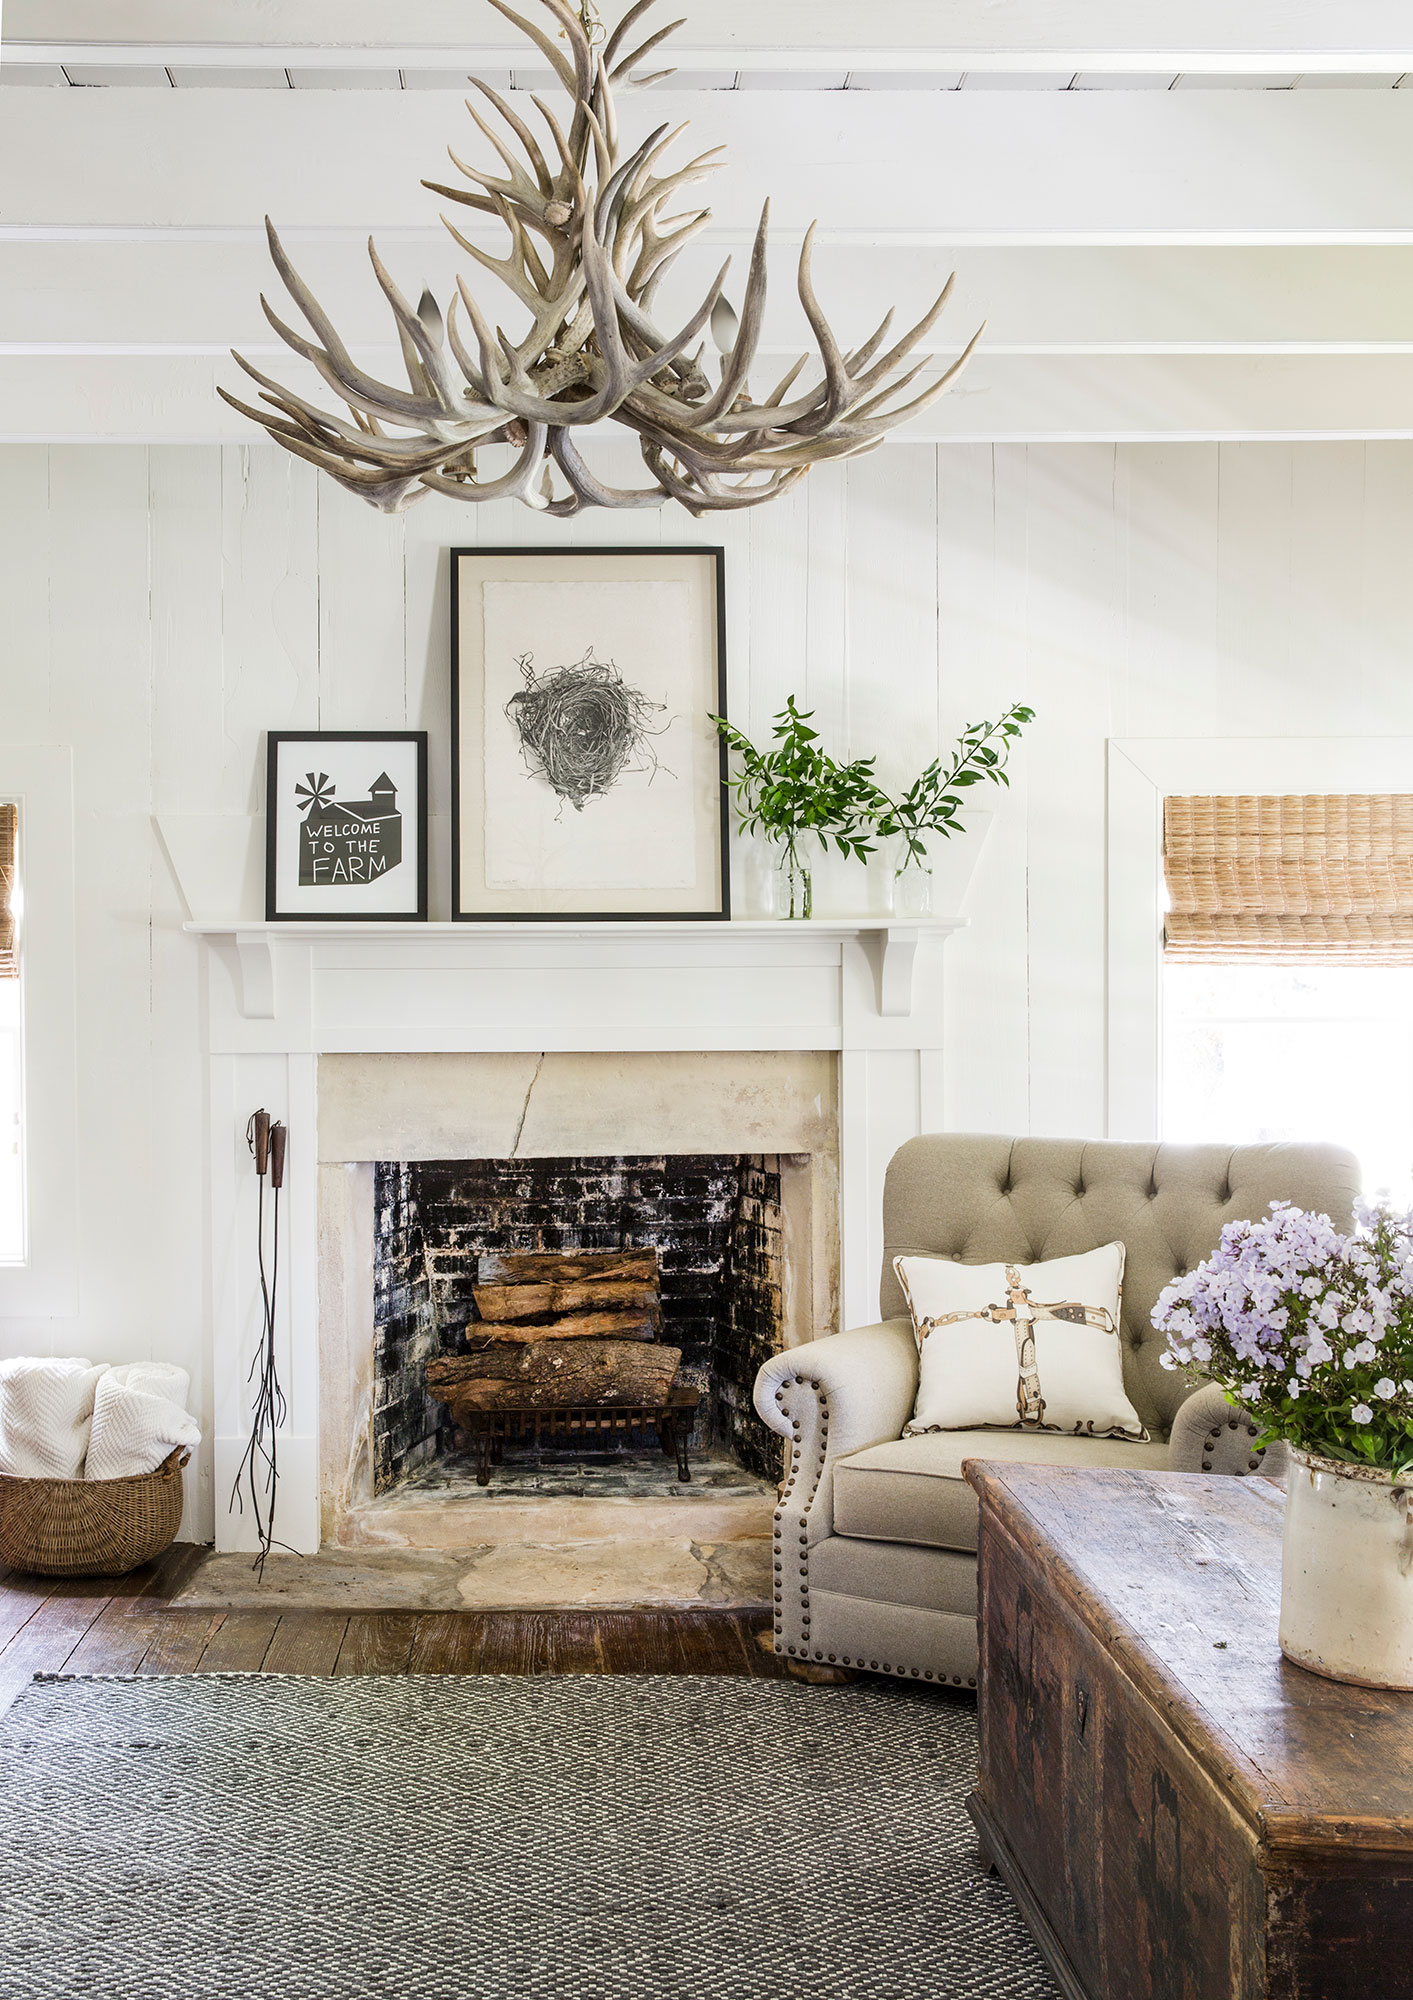 Livingroom Interiors Photography - Julie Soefer Photography